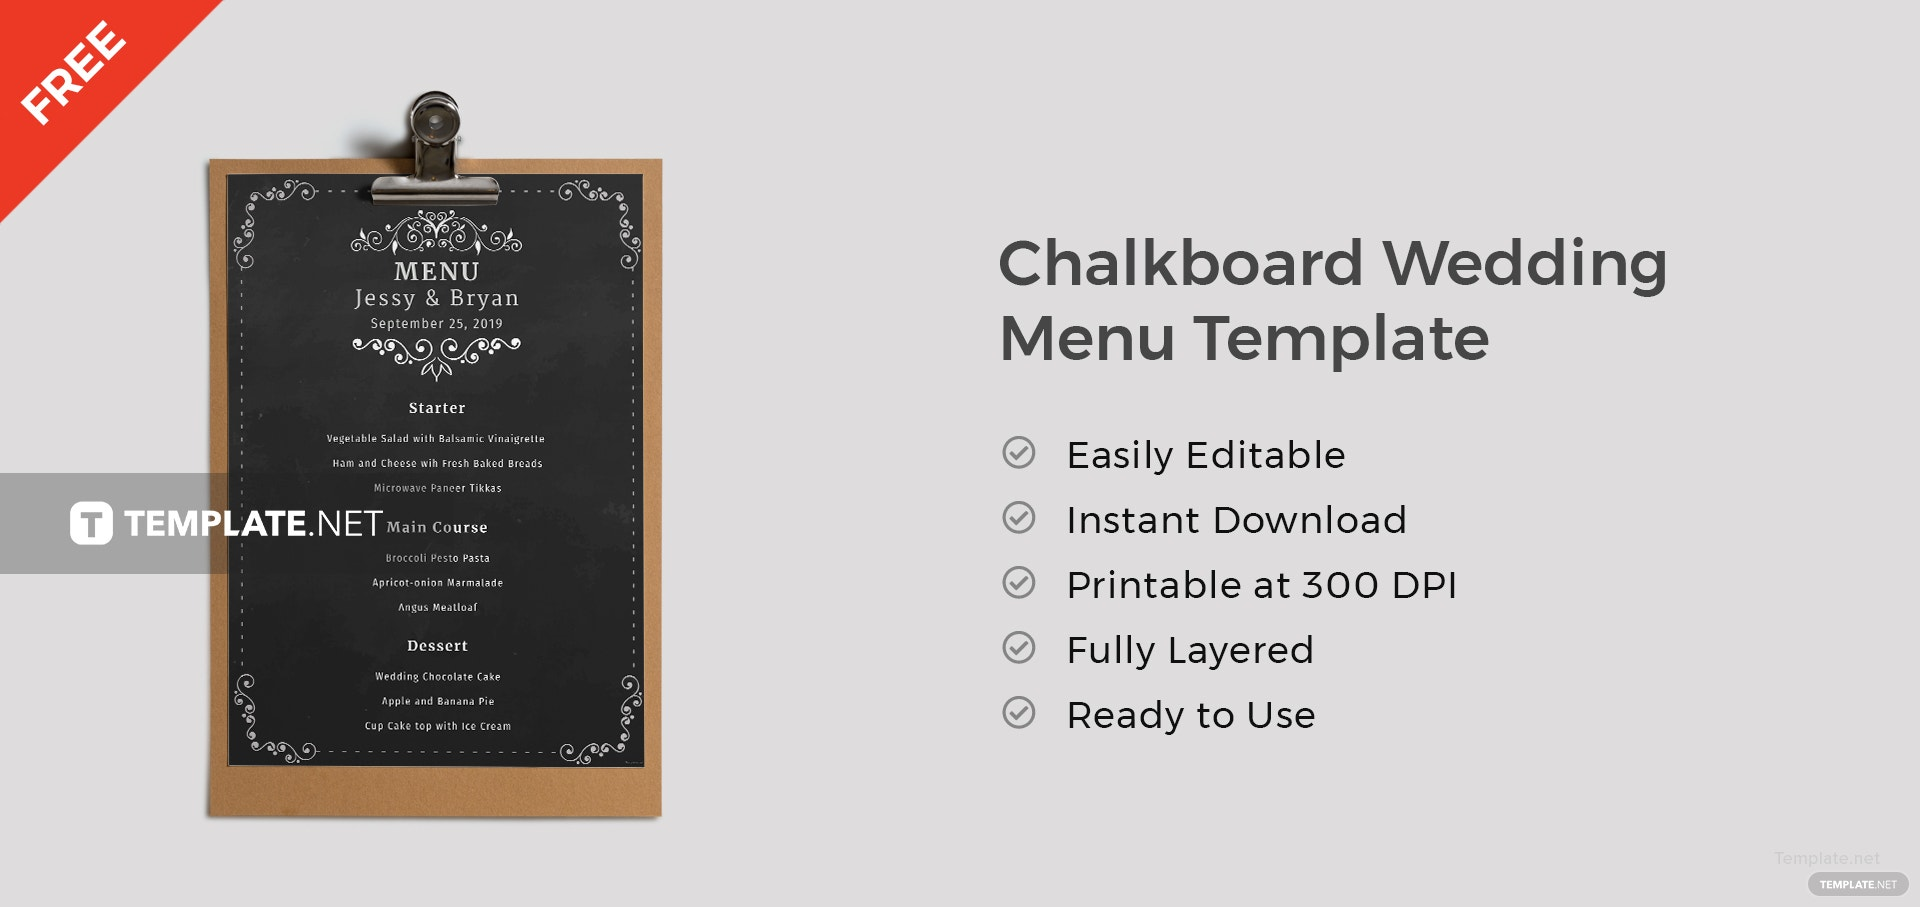 free chalkboard wedding menu template in microsoft word